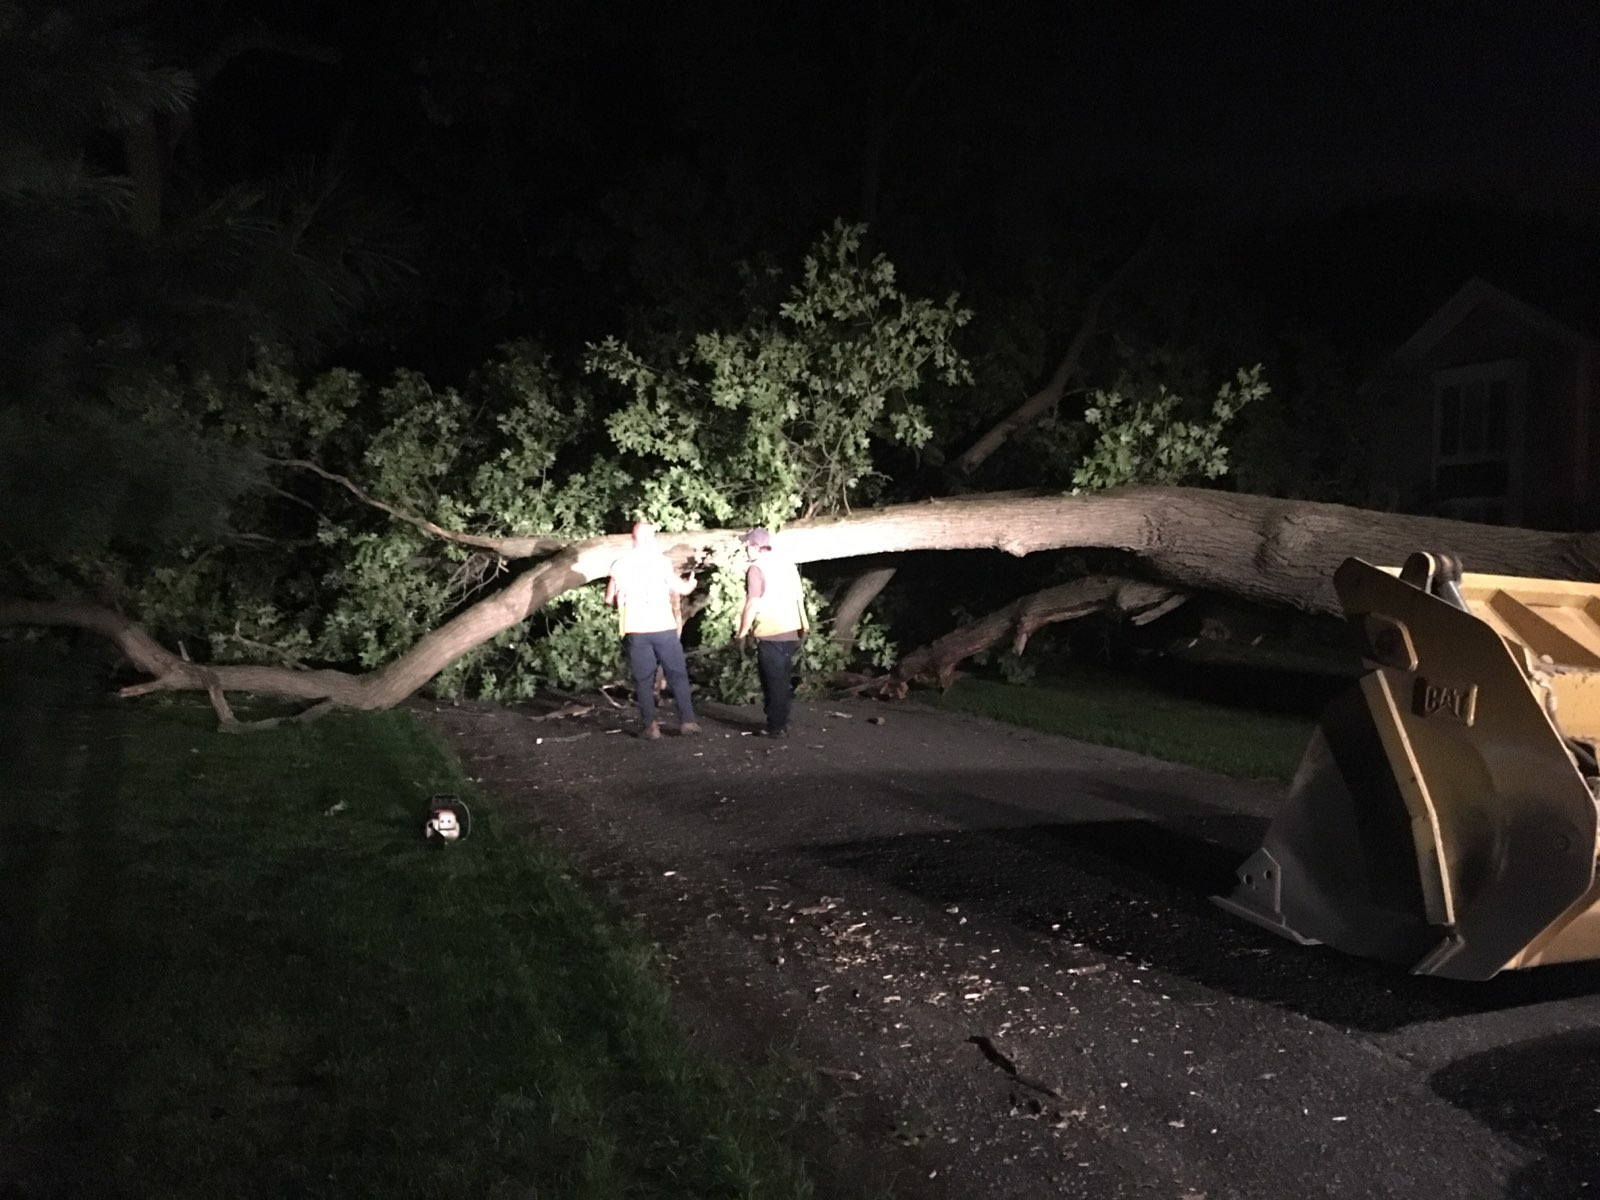 Giant tree down on Evergreen Rd in Granger prompts VEST to block off the road while county crews arrive with needed apparatus